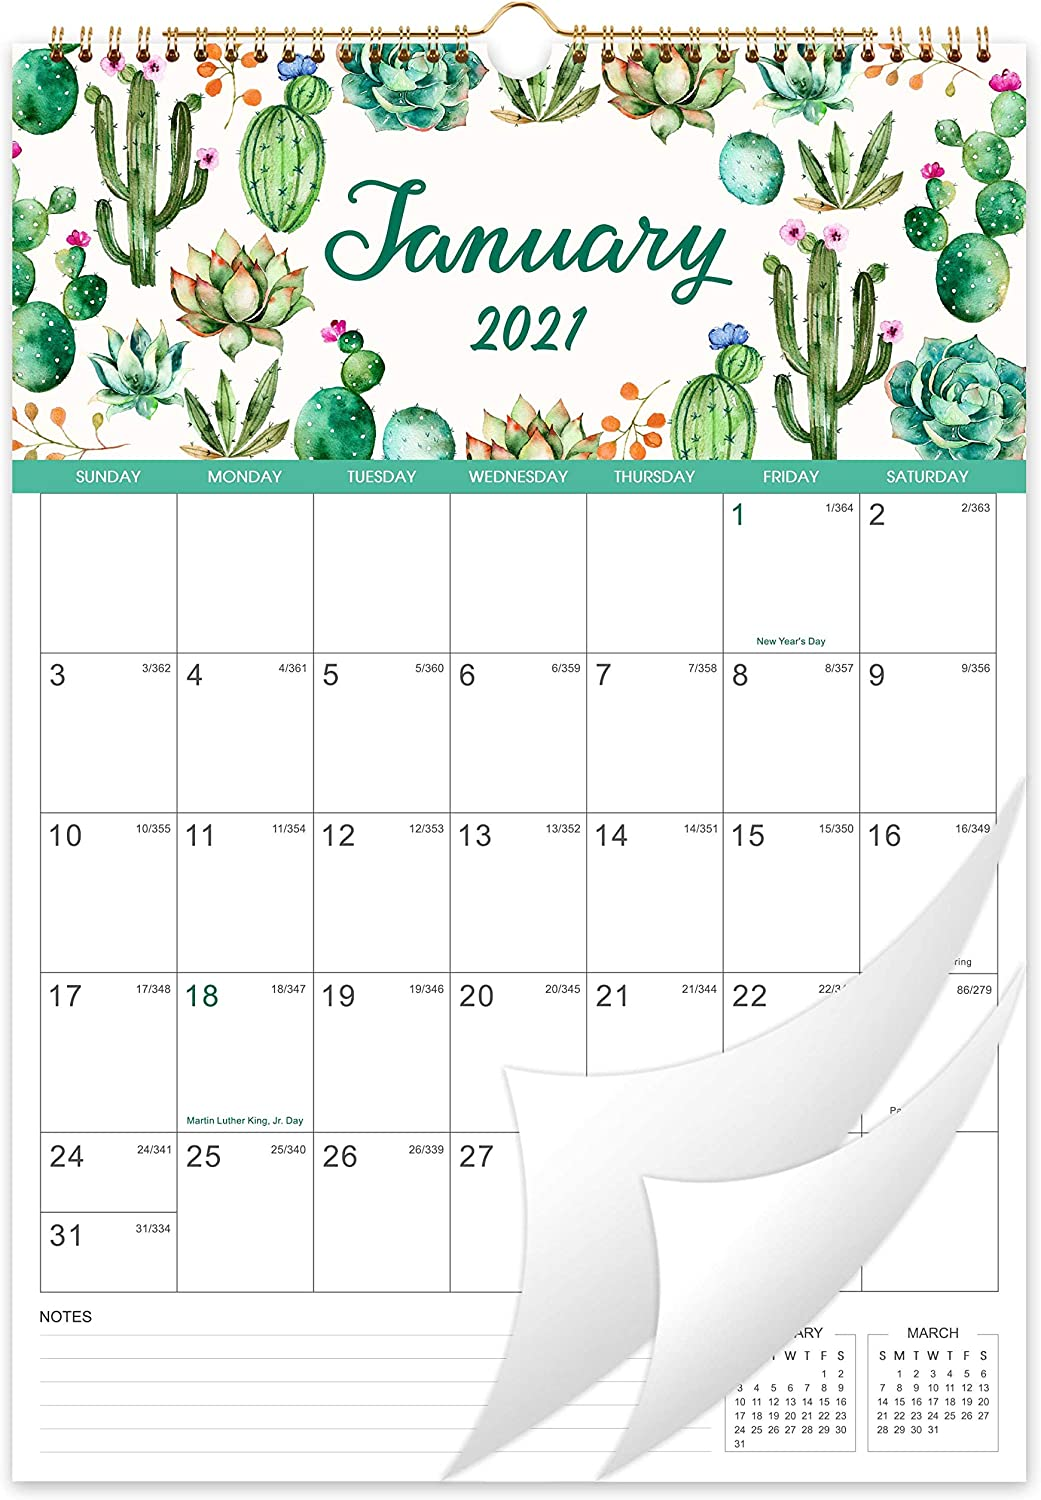 Monthly Calendar 2021 Amazon.: Calendar 2021 12 Monthly Wall Calendar Planner Jan